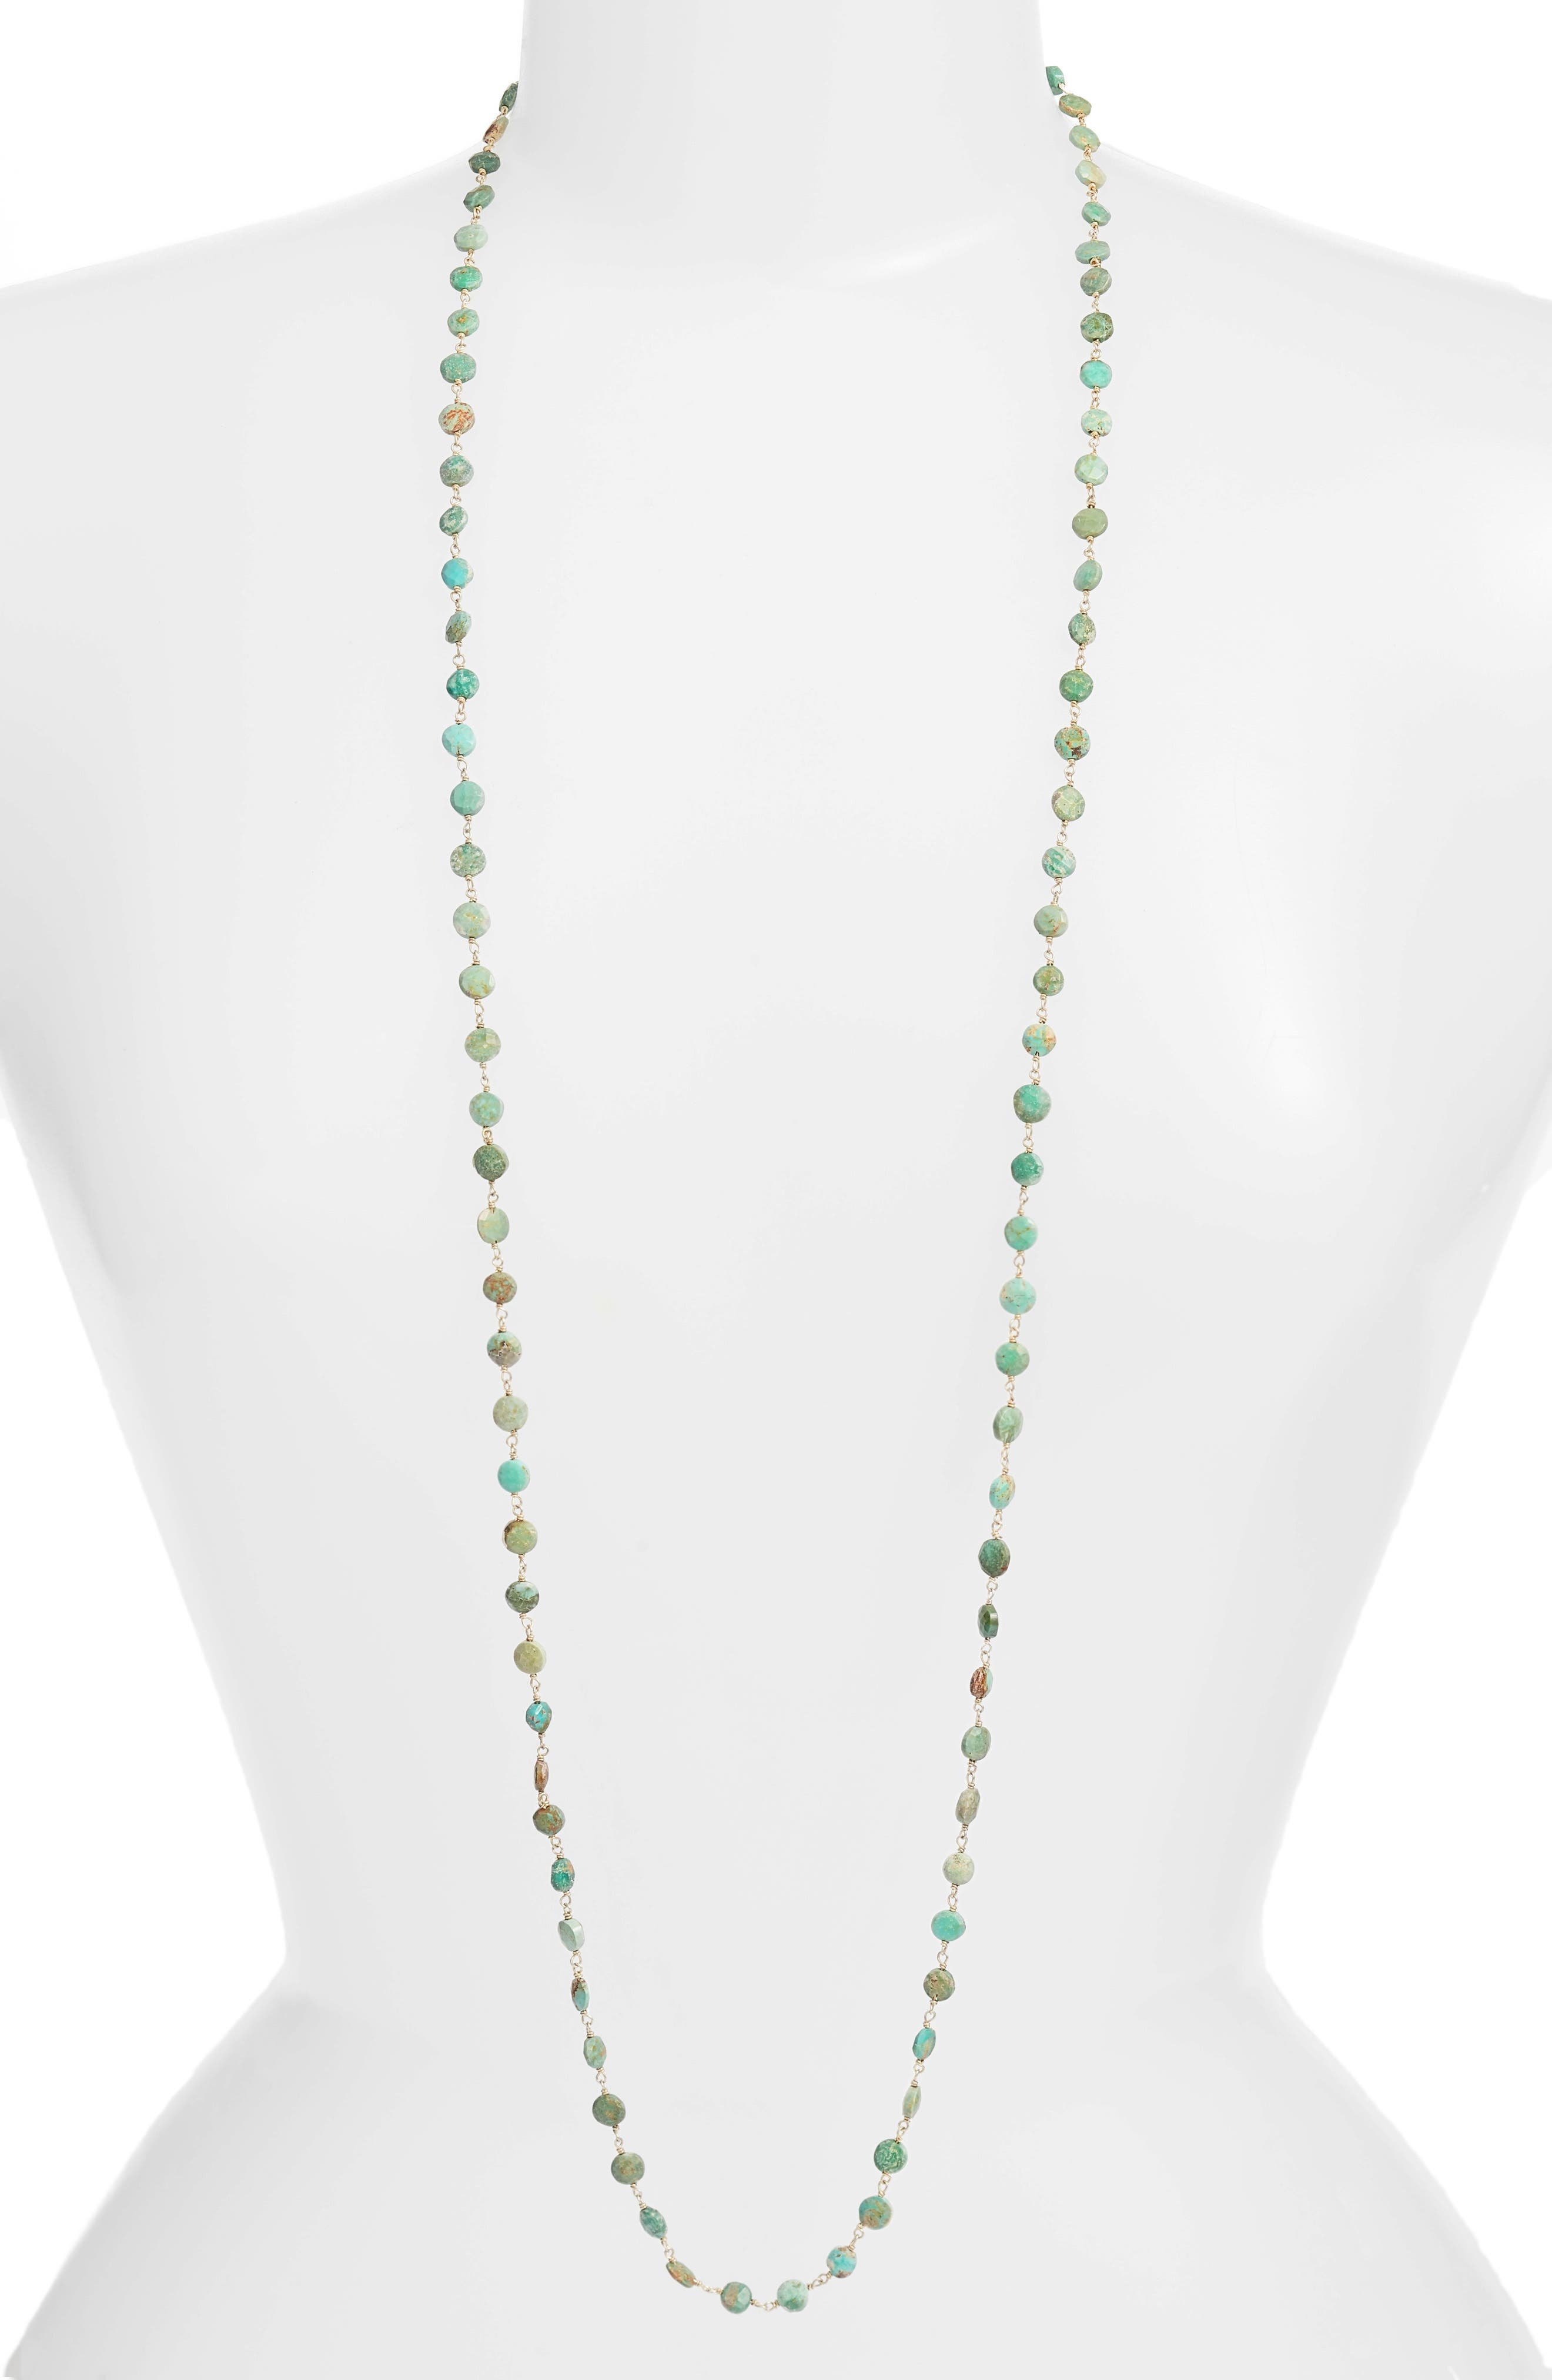 Diana Coin Necklace,                             Main thumbnail 1, color,                             Turquoise Coin